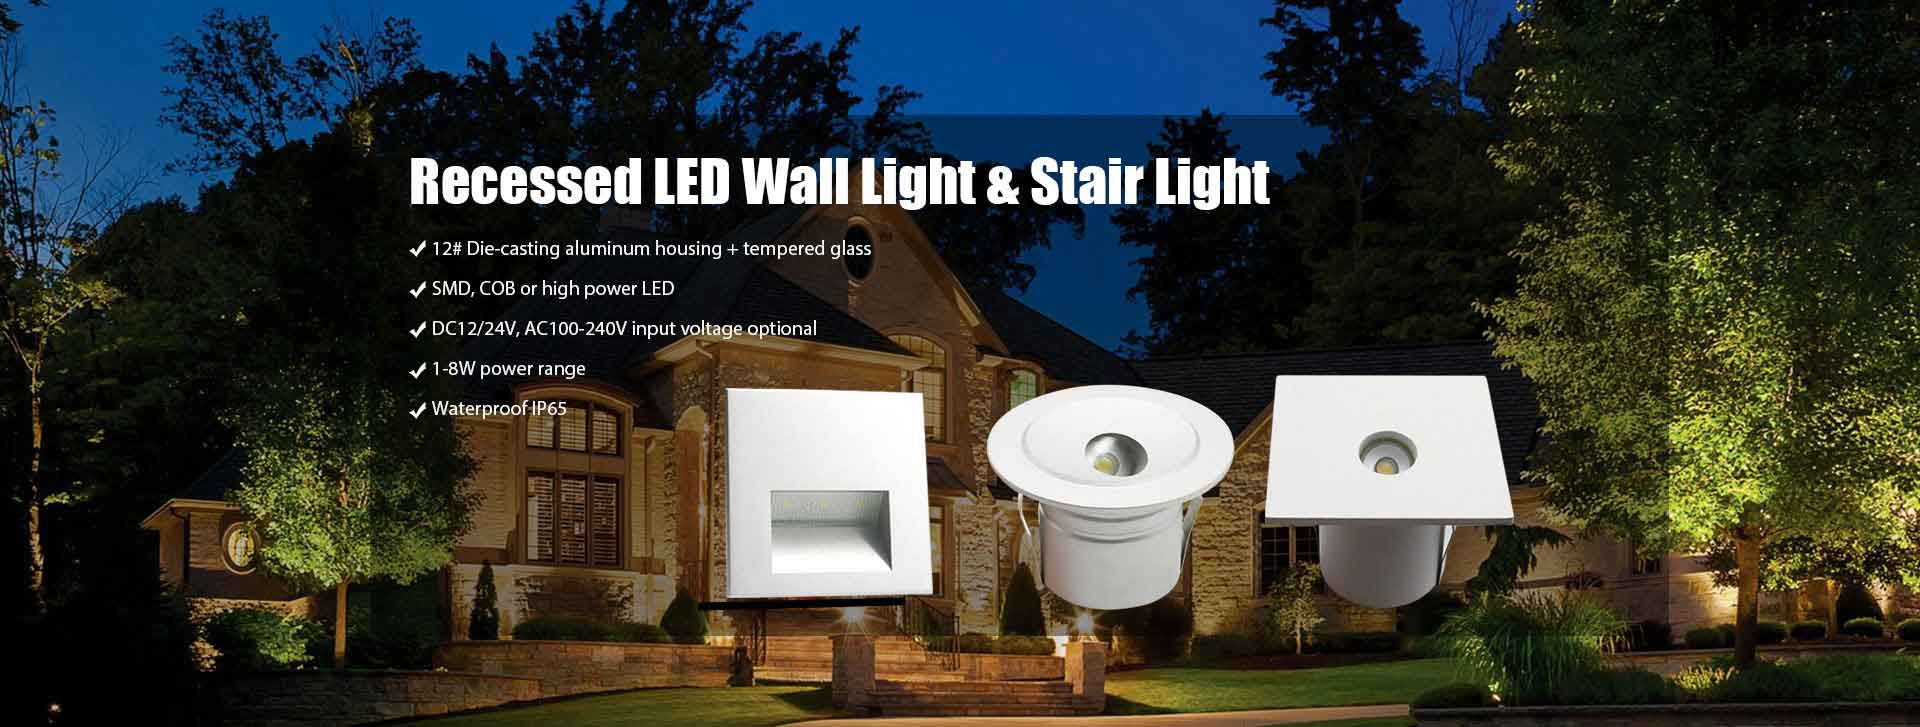 LED Recessed Wall Light & Stair Light